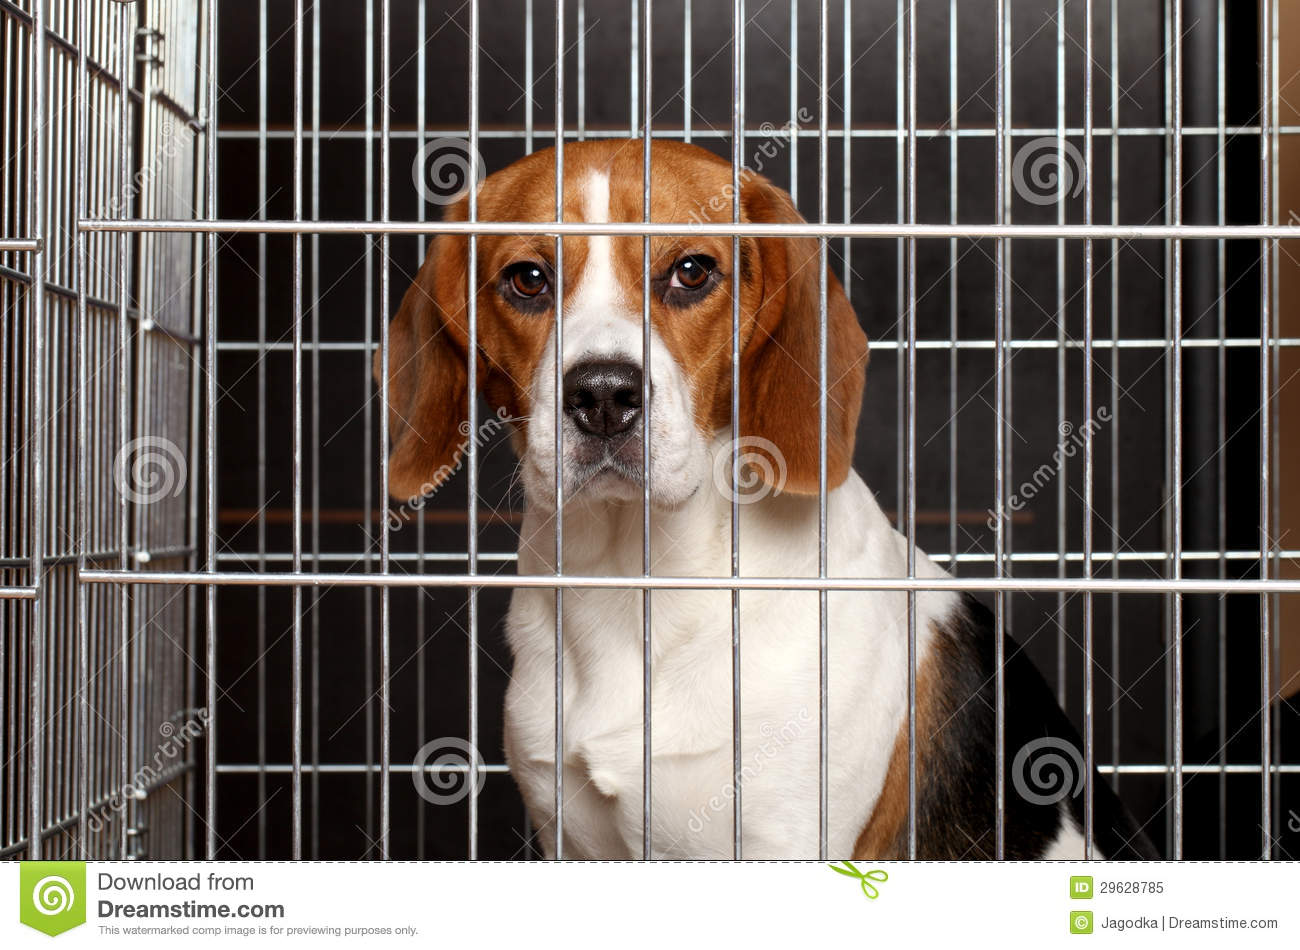 Dog In A Cage Royalty Free Stock Photo - Image: 29628785